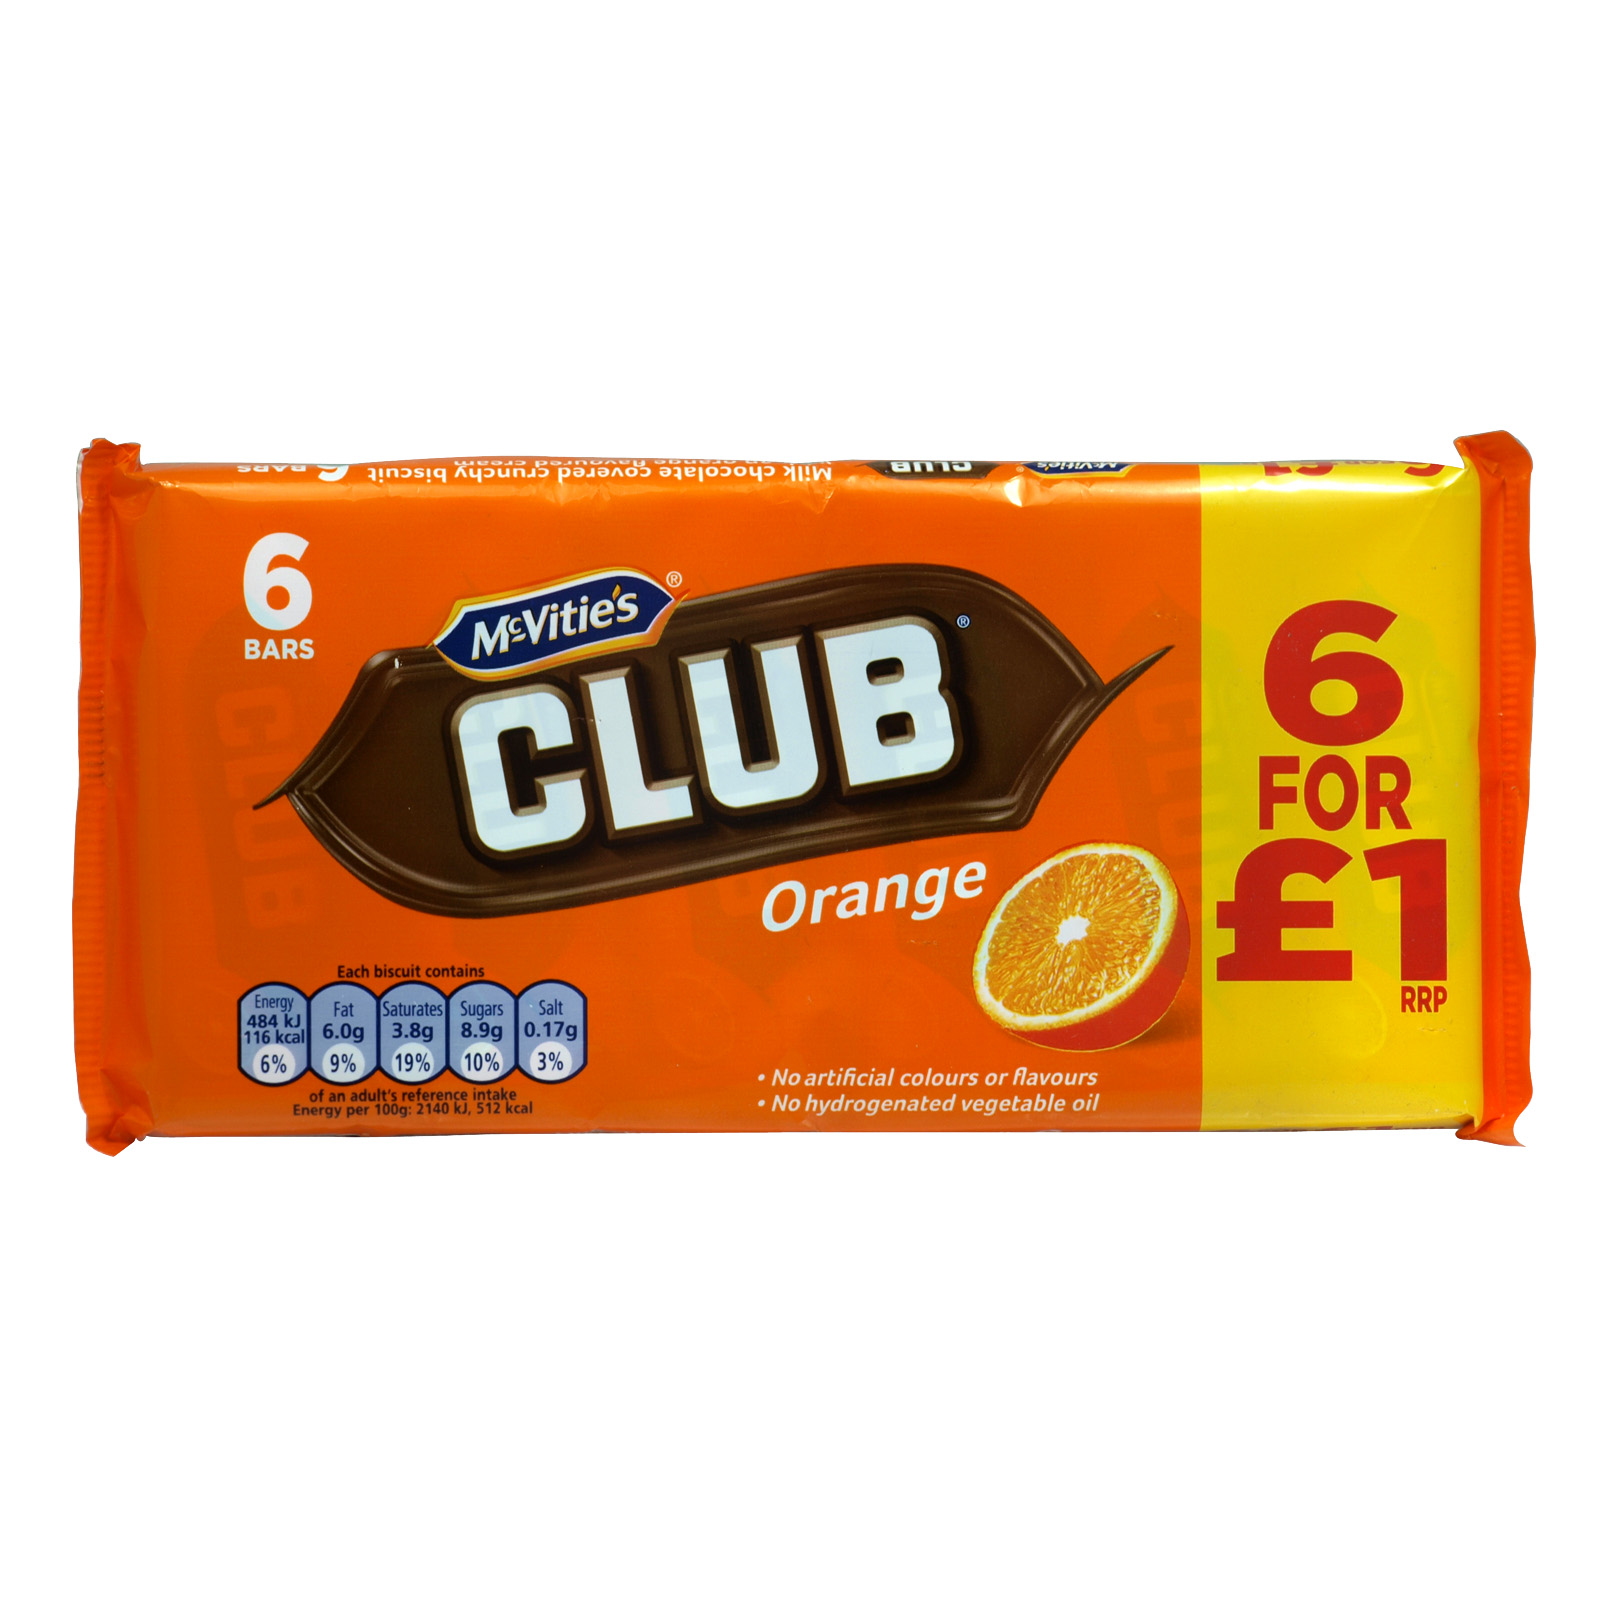 MCVITIES CLUB ORANGE 6 PACK PM ?1.00 X12